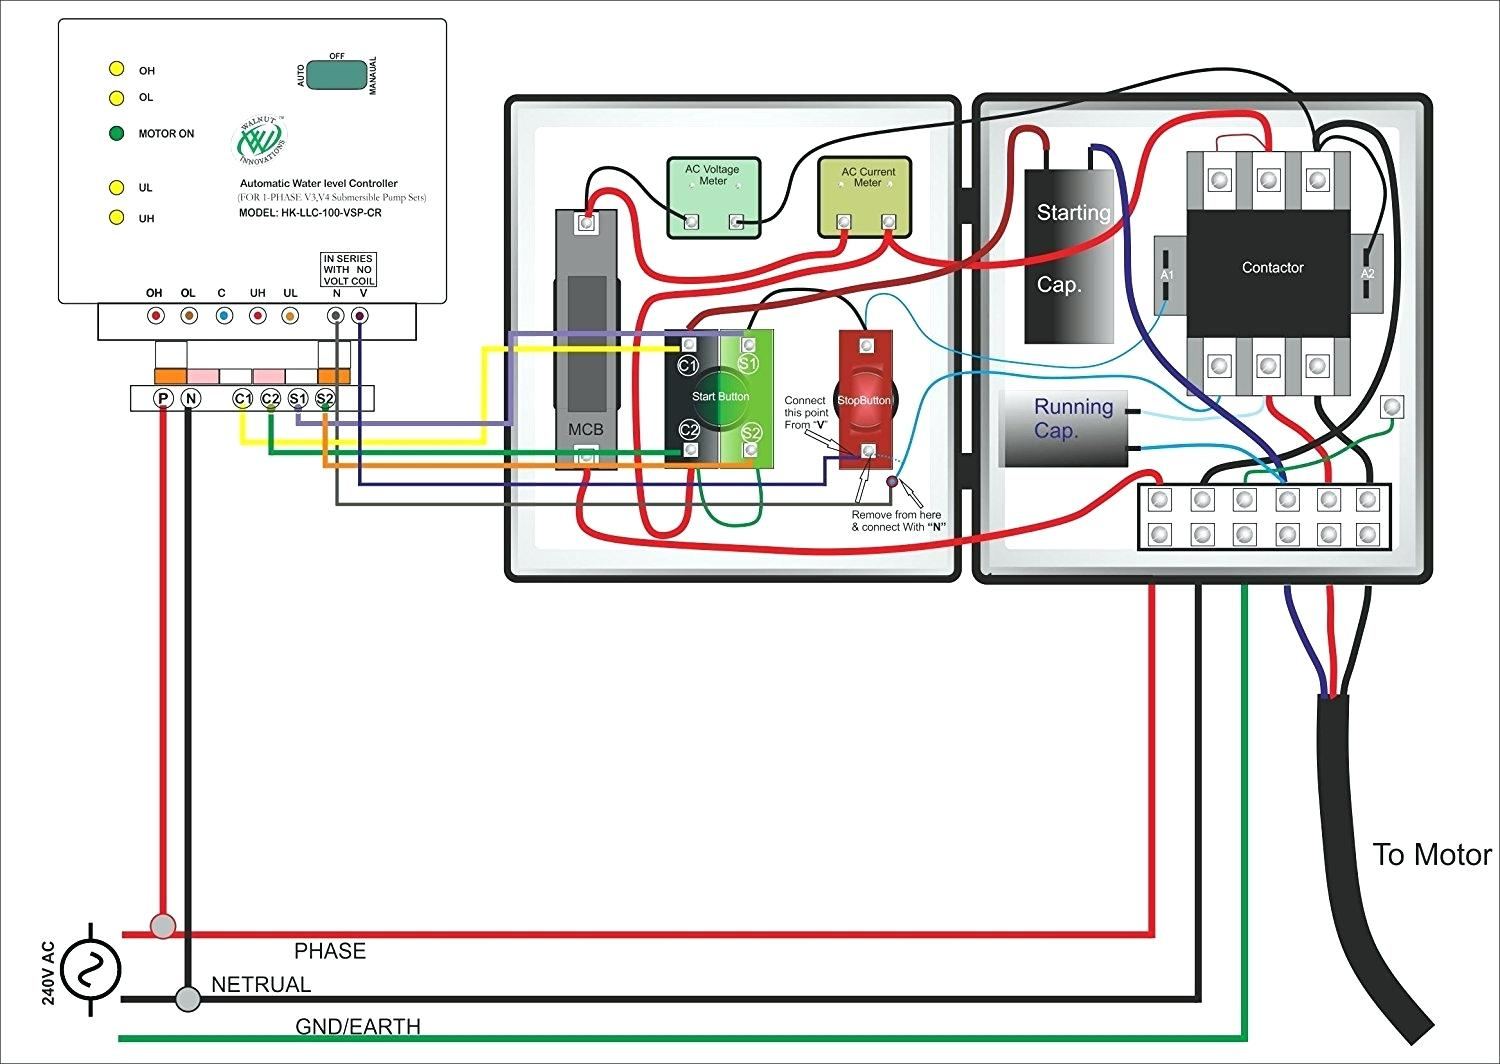 Surprising Red Jacket Pump Control Box Wiring Diagram Circuit Diagram Template Wiring Digital Resources Anistprontobusorg